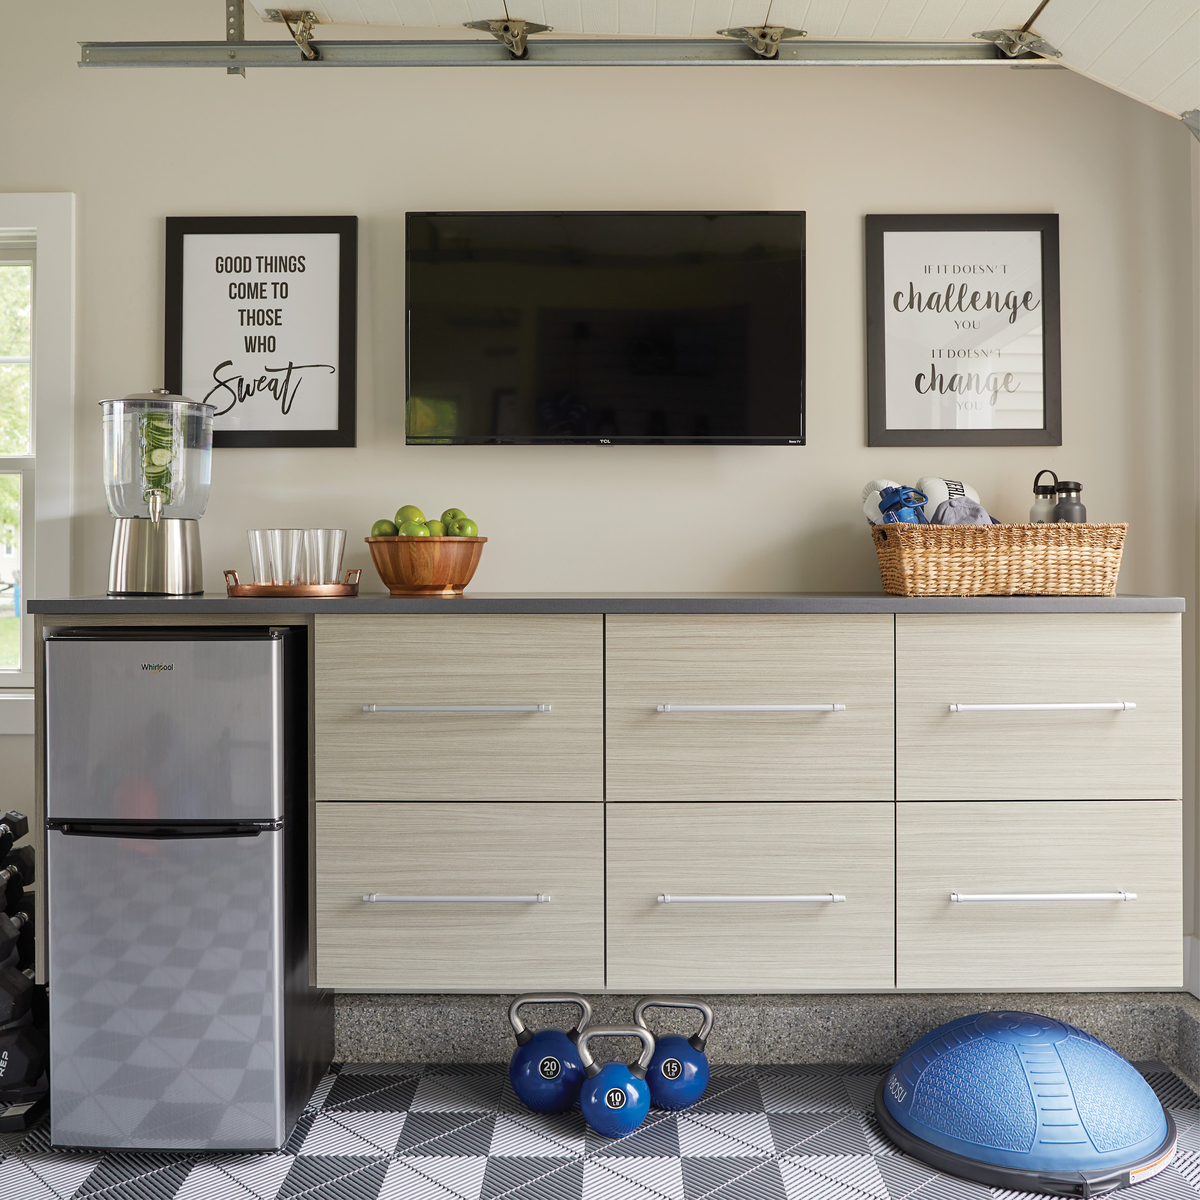 Home gym storage cabinets for your garage from Inspired Closets